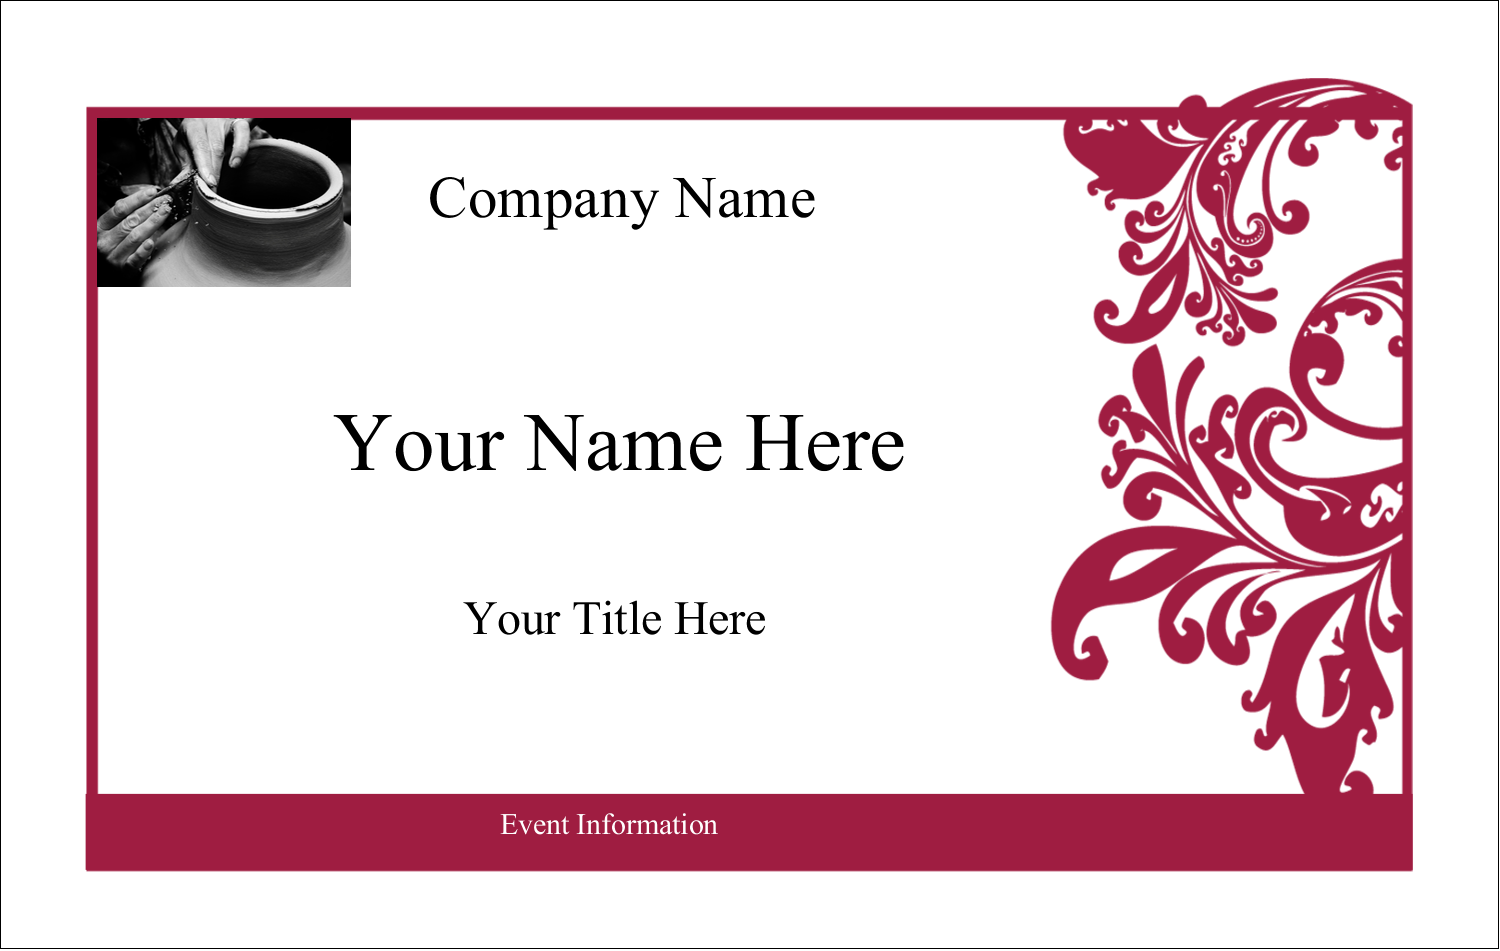 2¼ x 3½ Name Tags - Black and Red Art